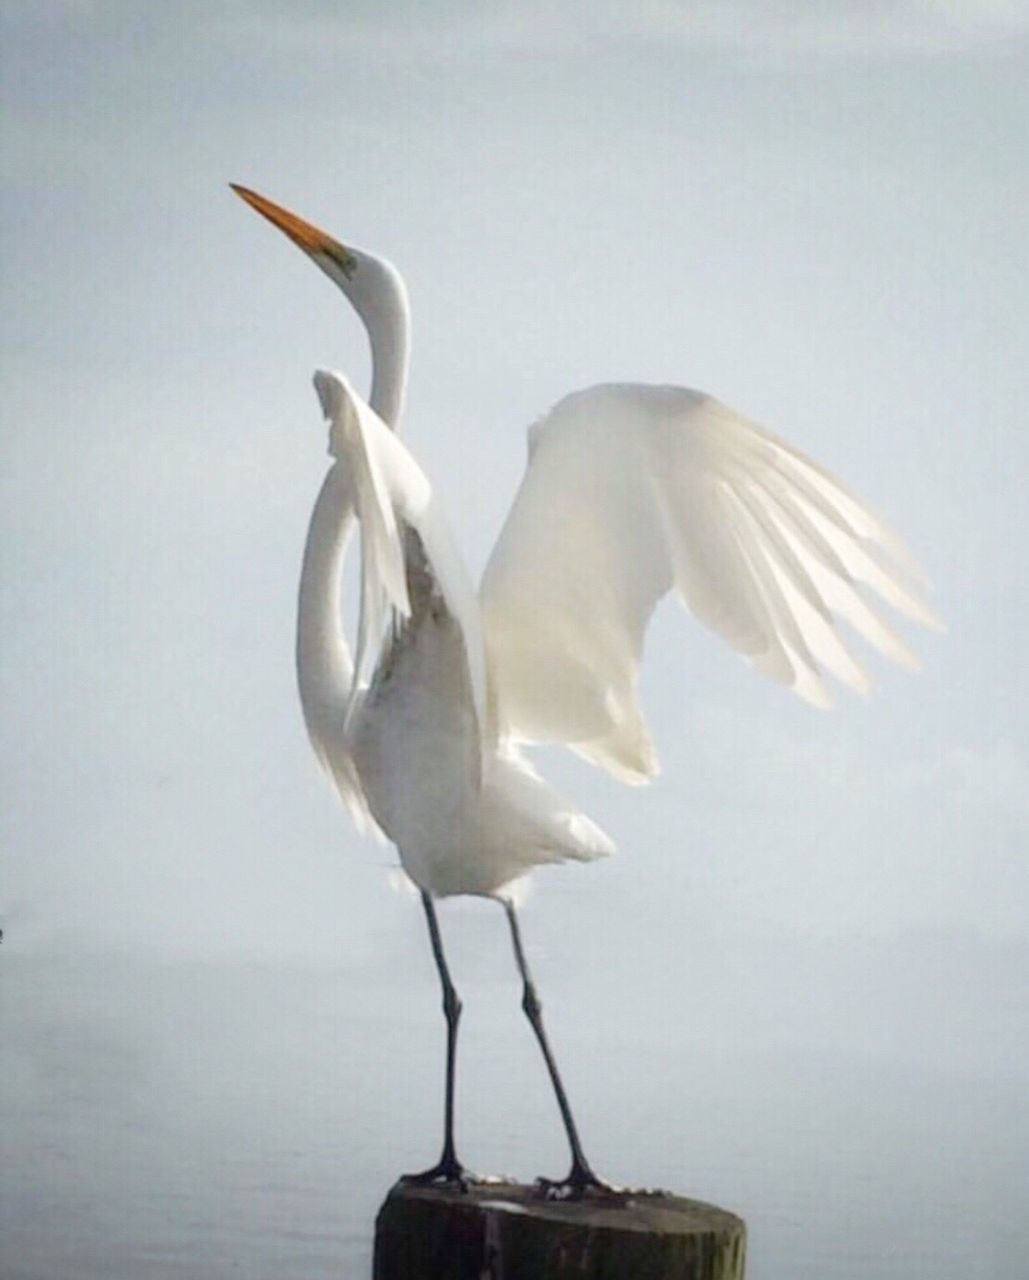 bird, one animal, animal themes, animals in the wild, animal wildlife, no people, great egret, spread wings, full length, water, day, nature, standing, sea, outdoors